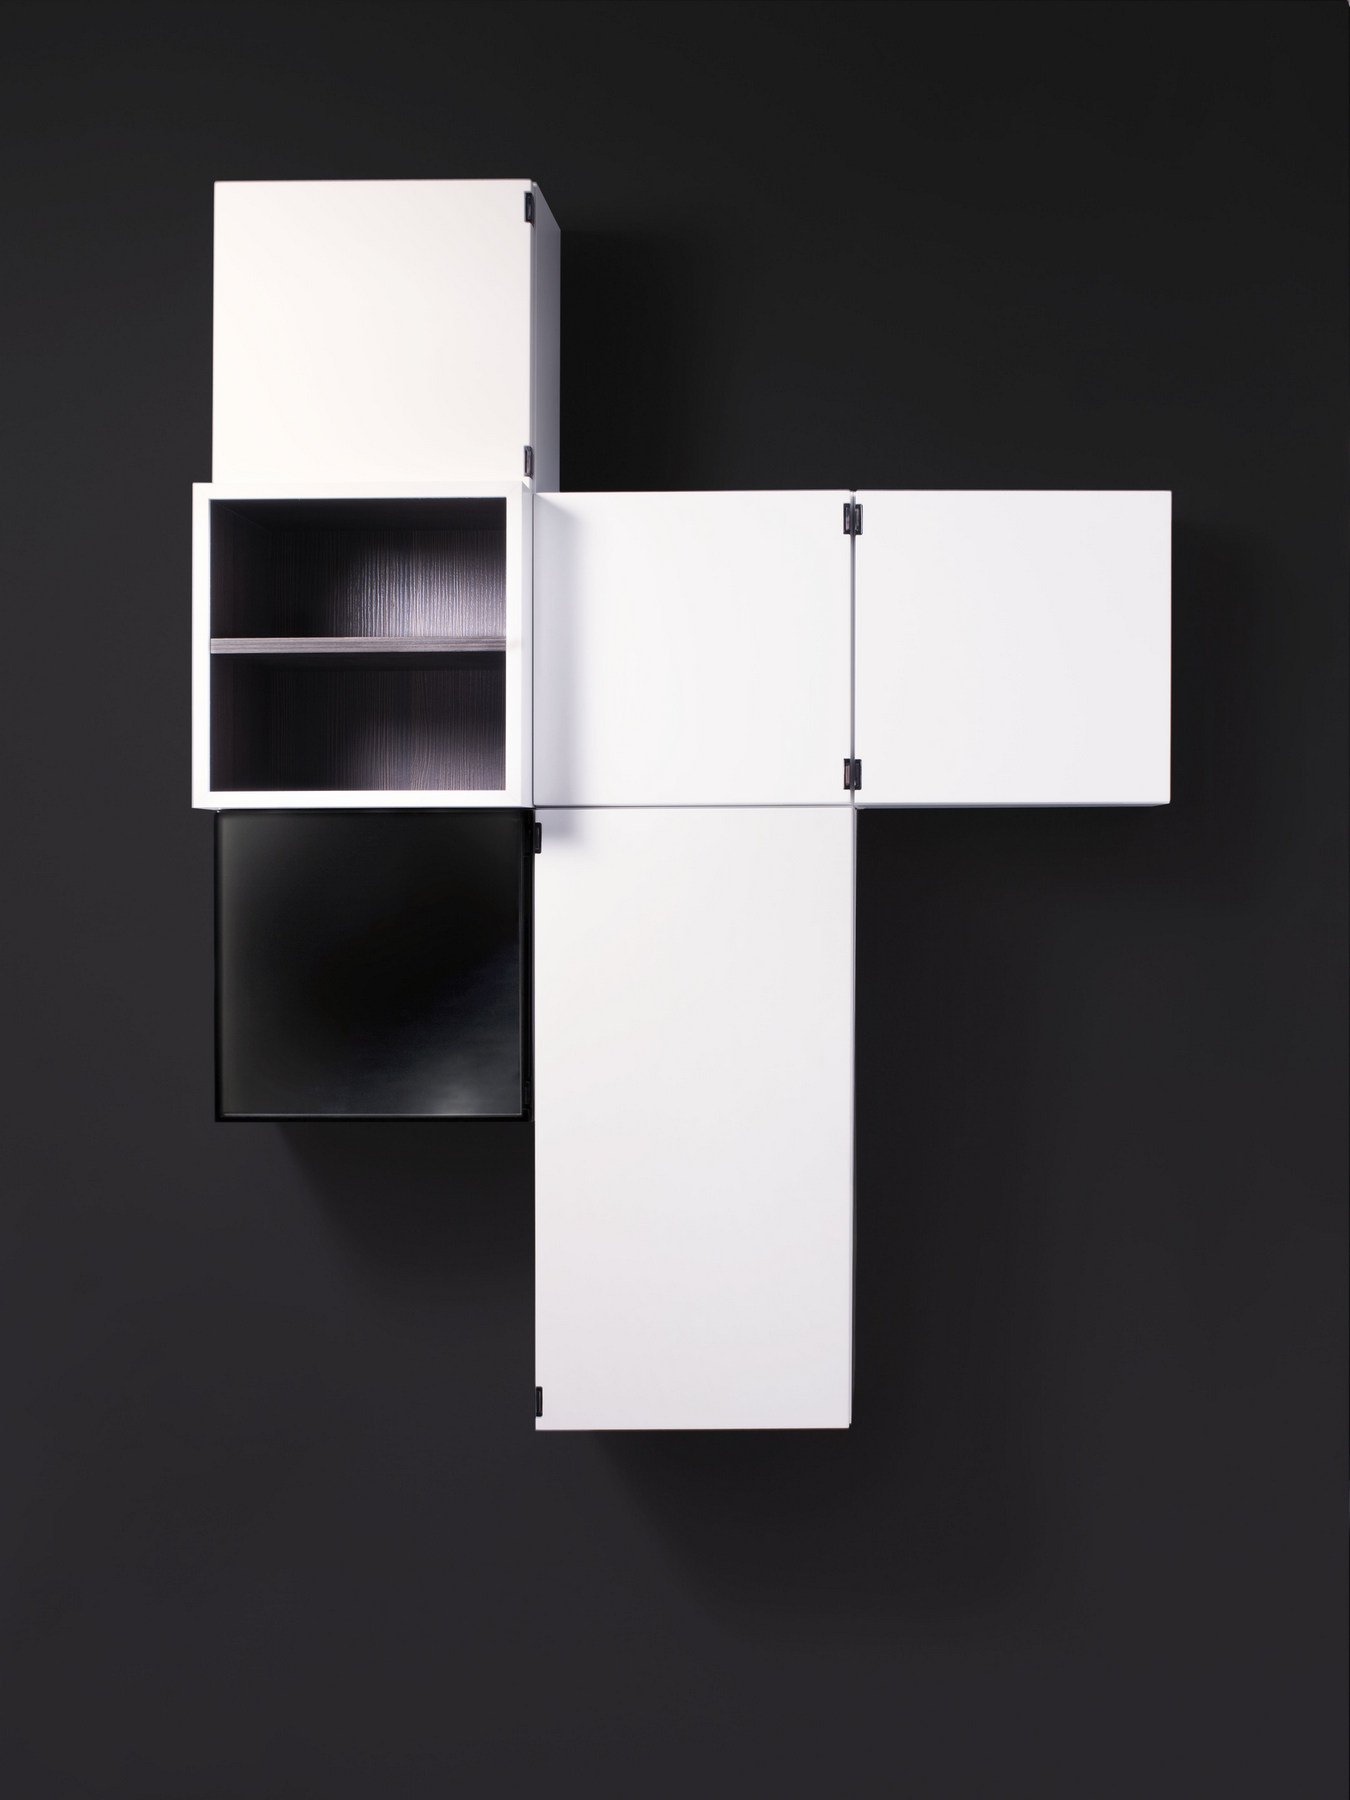 sectional suspended bathroom cabinet treves by boffi design piero